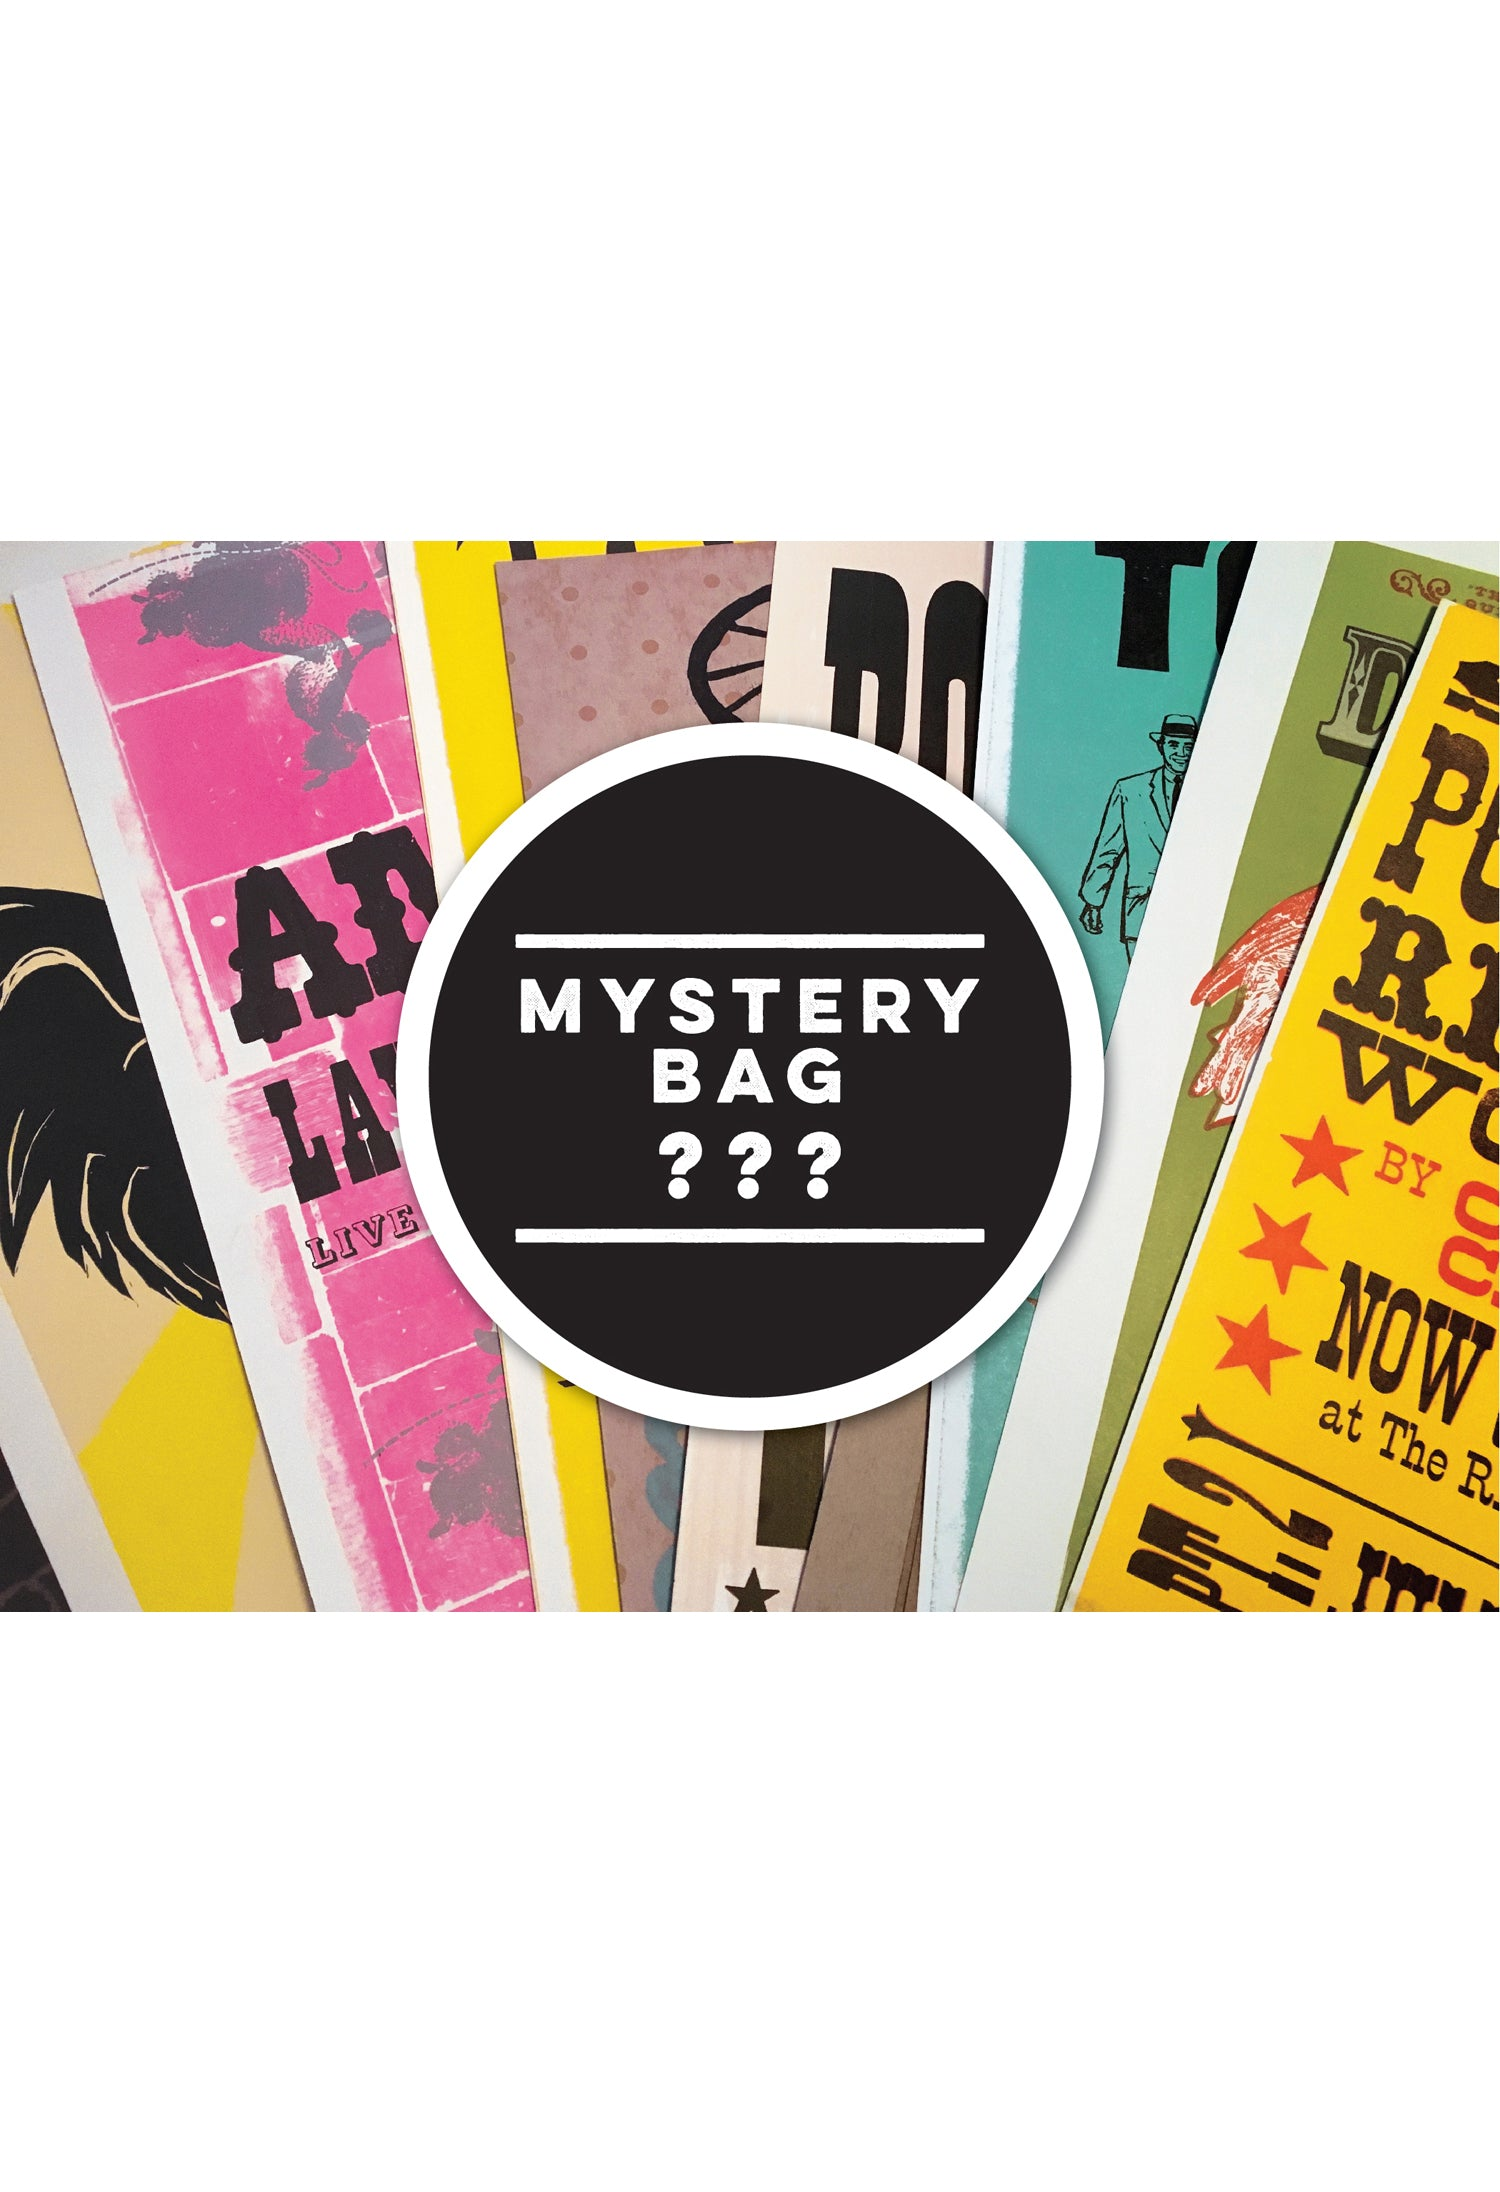 Mystery bag full of Letterpress printed posters. Six prints for only $25!